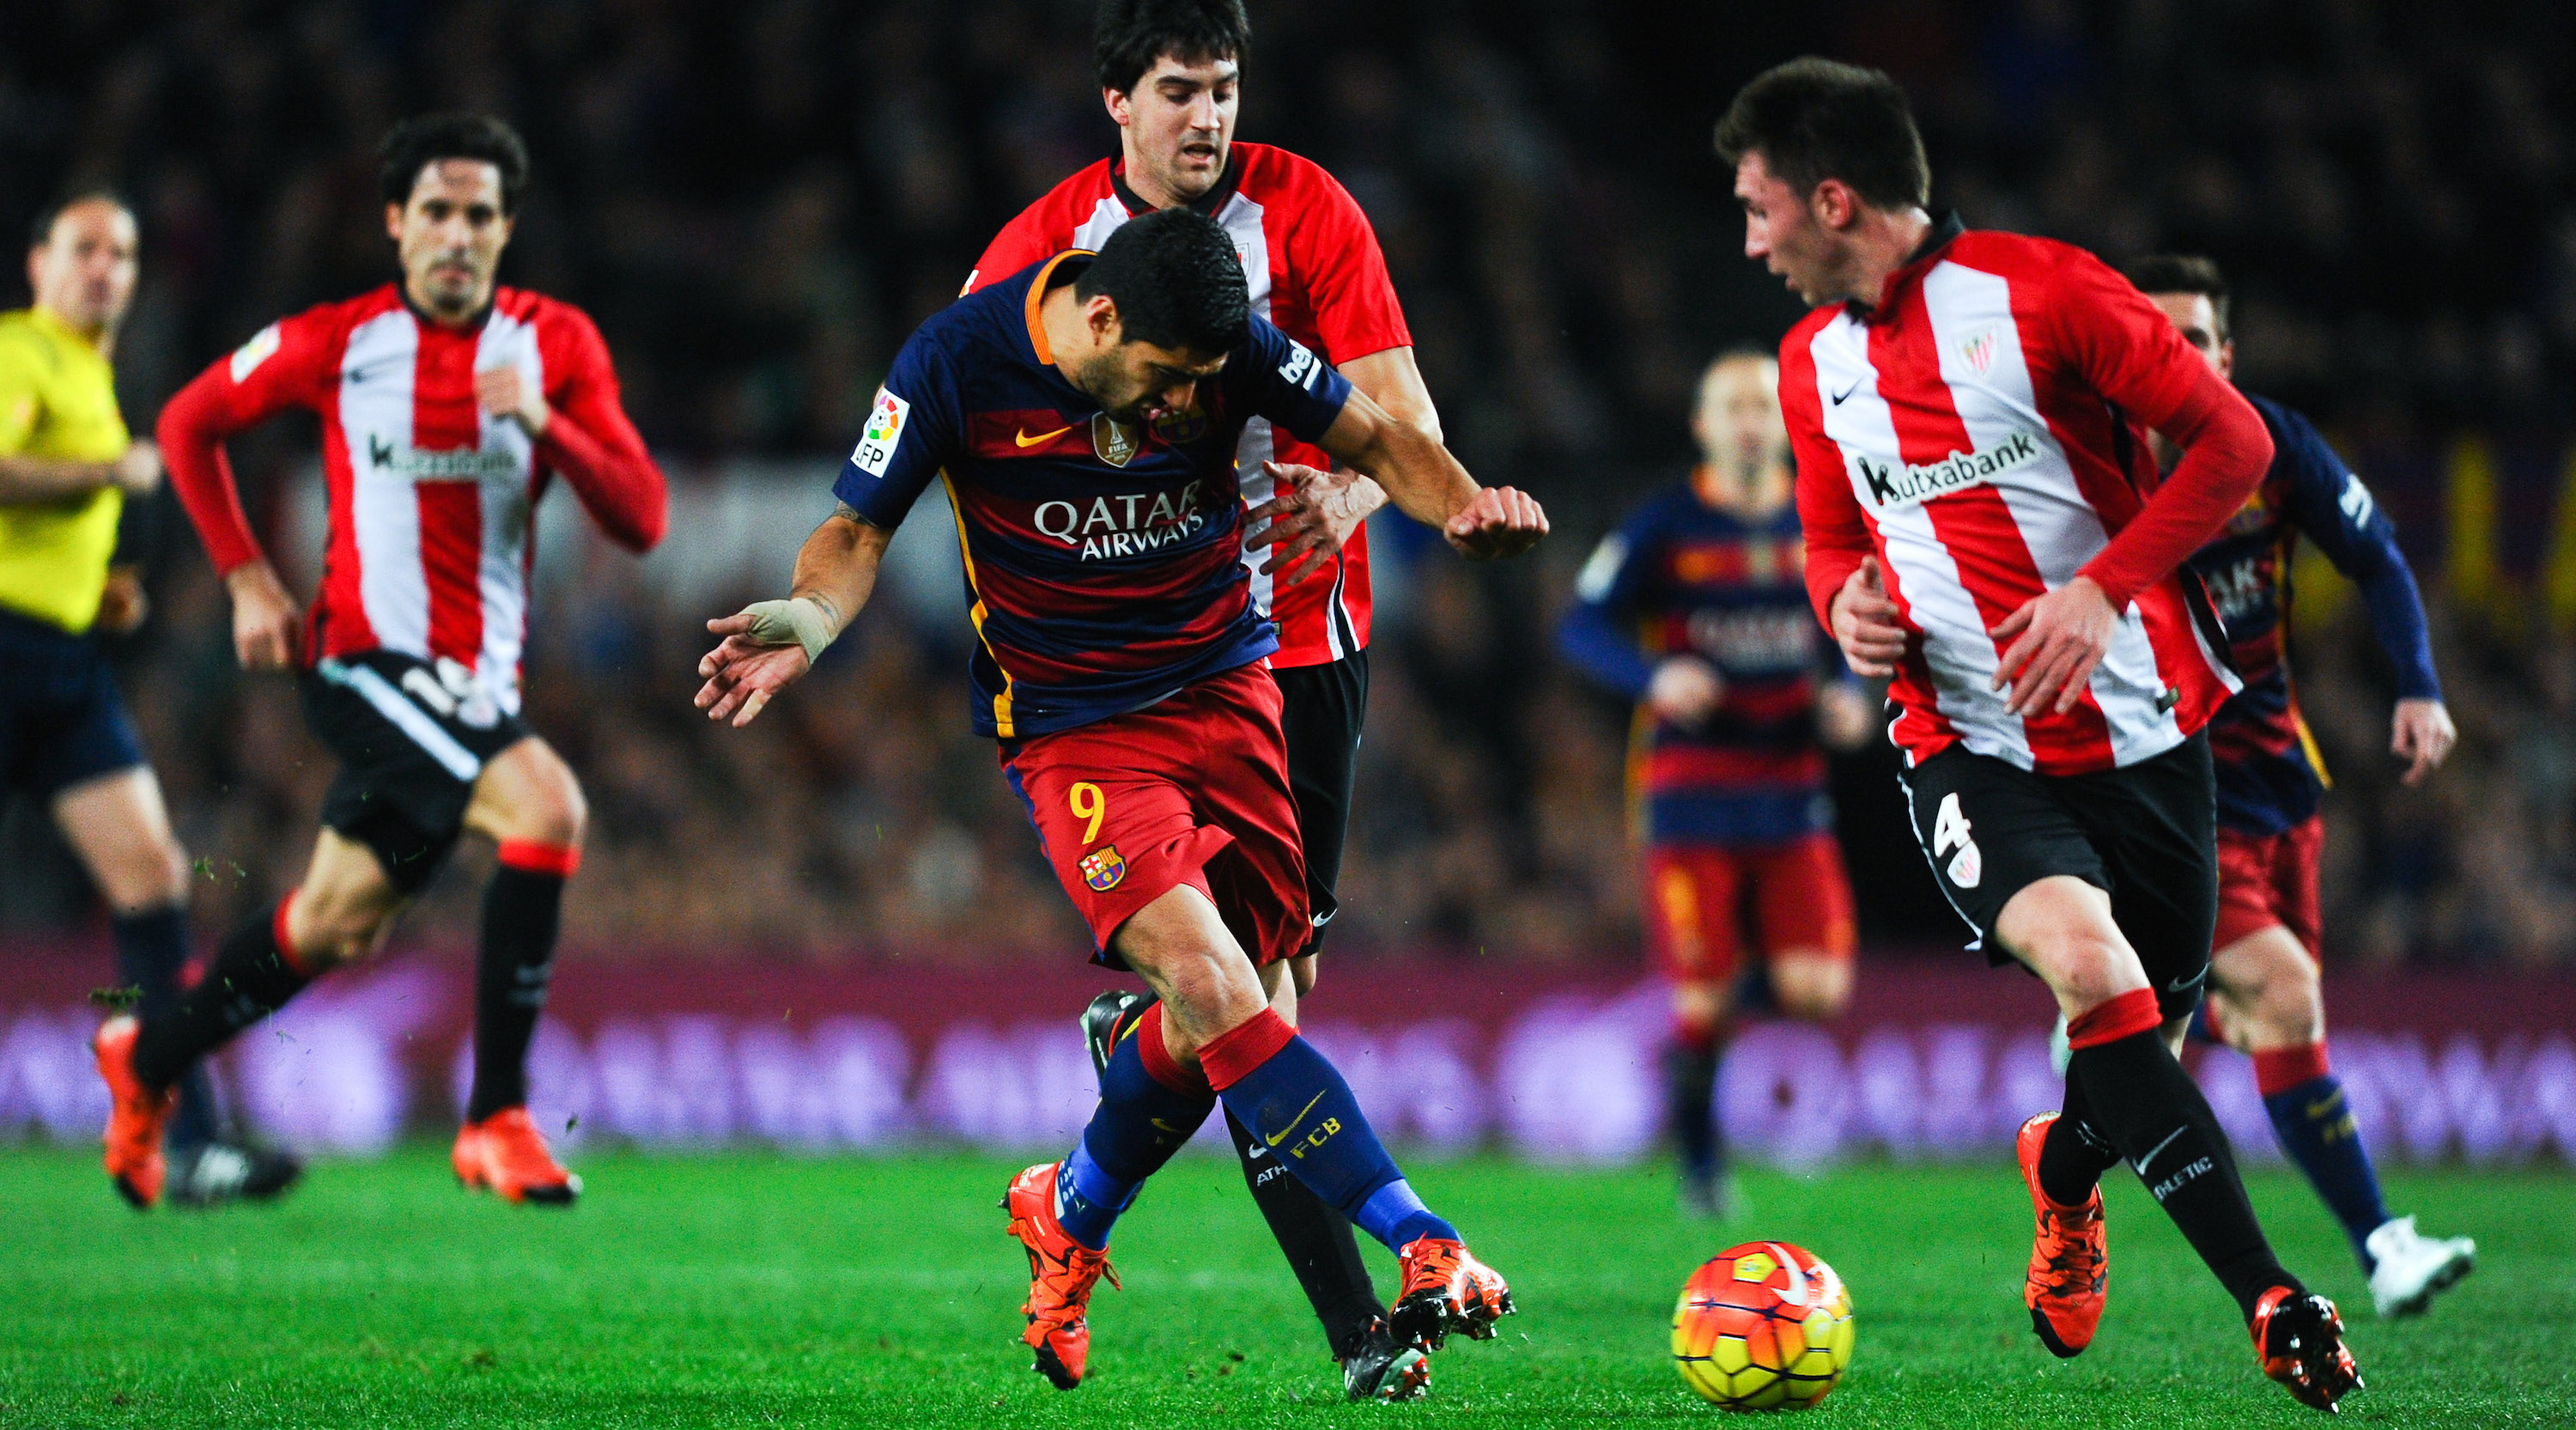 BARCELONA, SPAIN - JANUARY 17: Luis Suarez of FC Barcelona competes for the ball with Aymeric Laporte (R) and Mikel San Jose of Athletic Club during the La Liga match between FC Barcelona and Athletic Club de Bilbao at Camp Nou on January 17, 2016 in Barcelona, Spain. (Photo by David Ramos/Getty Images)